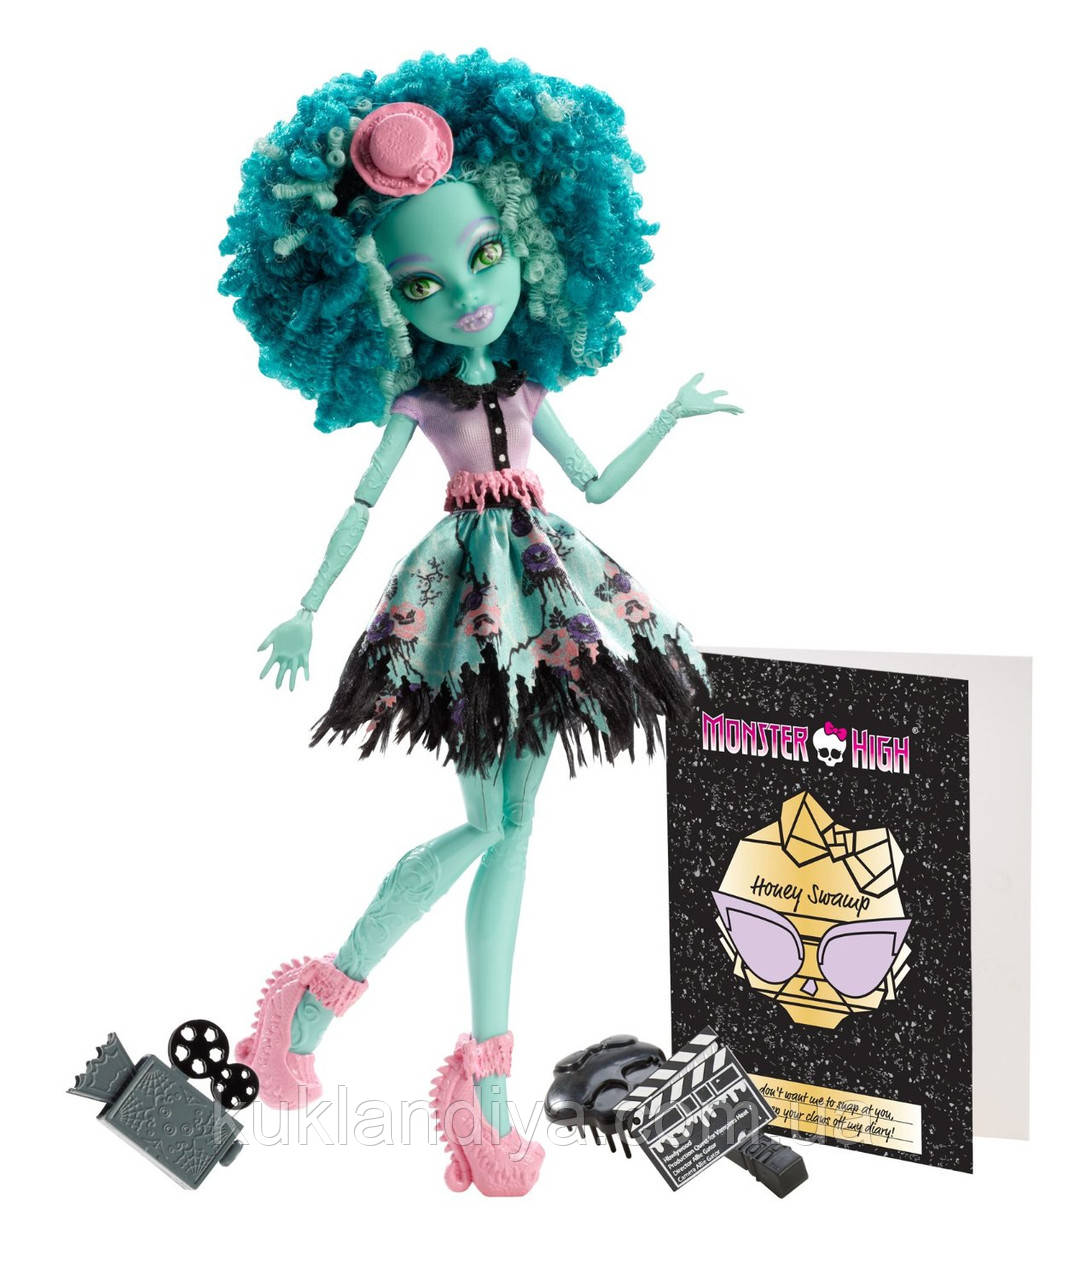 Кукла Monster High Ханни Свомп - Frights, Camera, Action! Honey Swamp